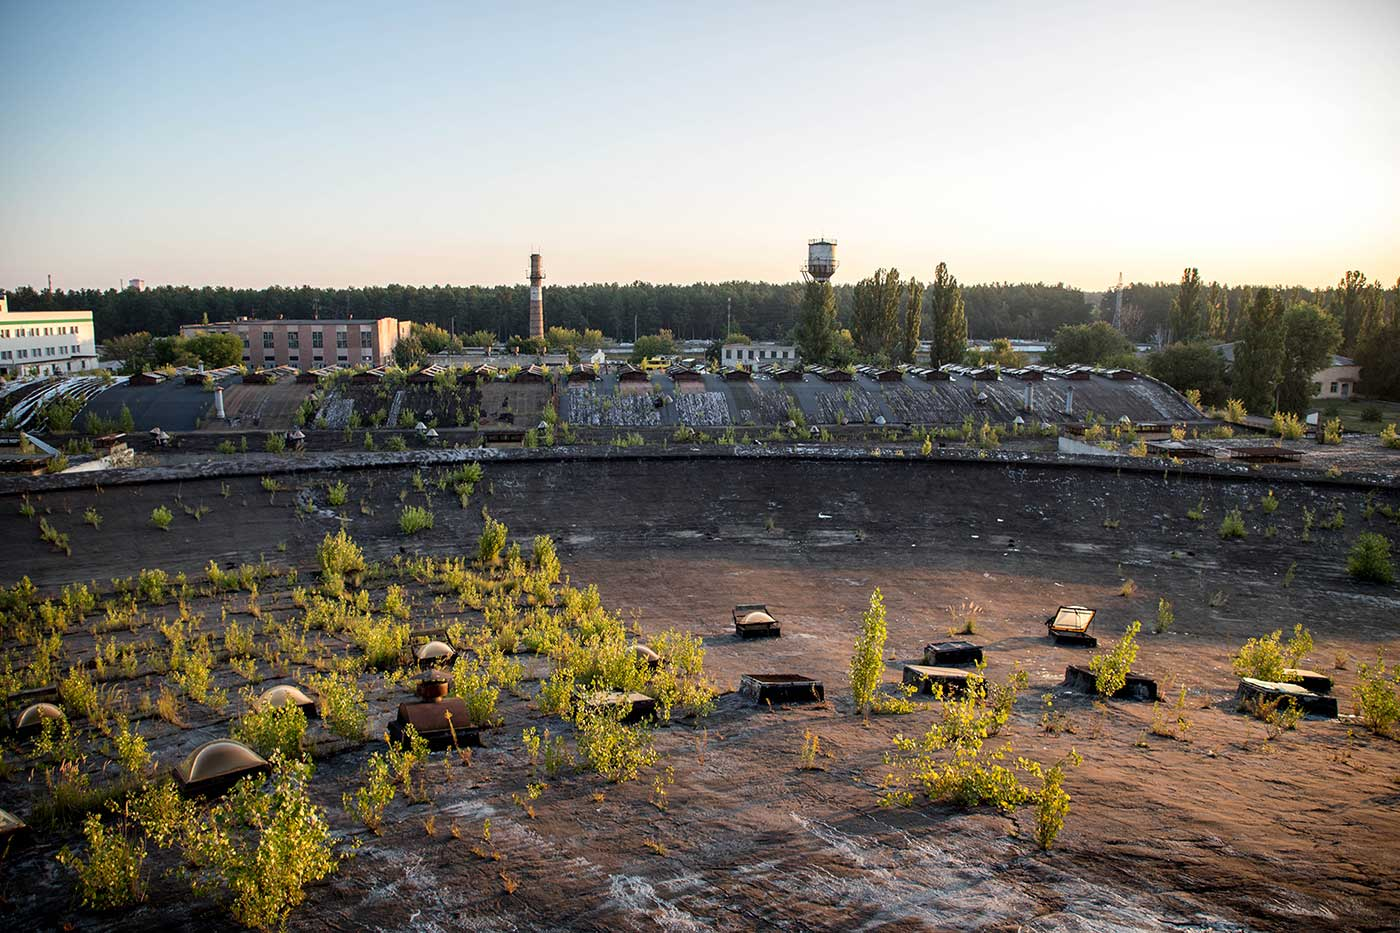 The building's roof was made from a tent of concrete panels, hung on top of a web of 84 steel cables. Autobus Park №7: the abandoned bus depot in Kyiv, Ukraine.